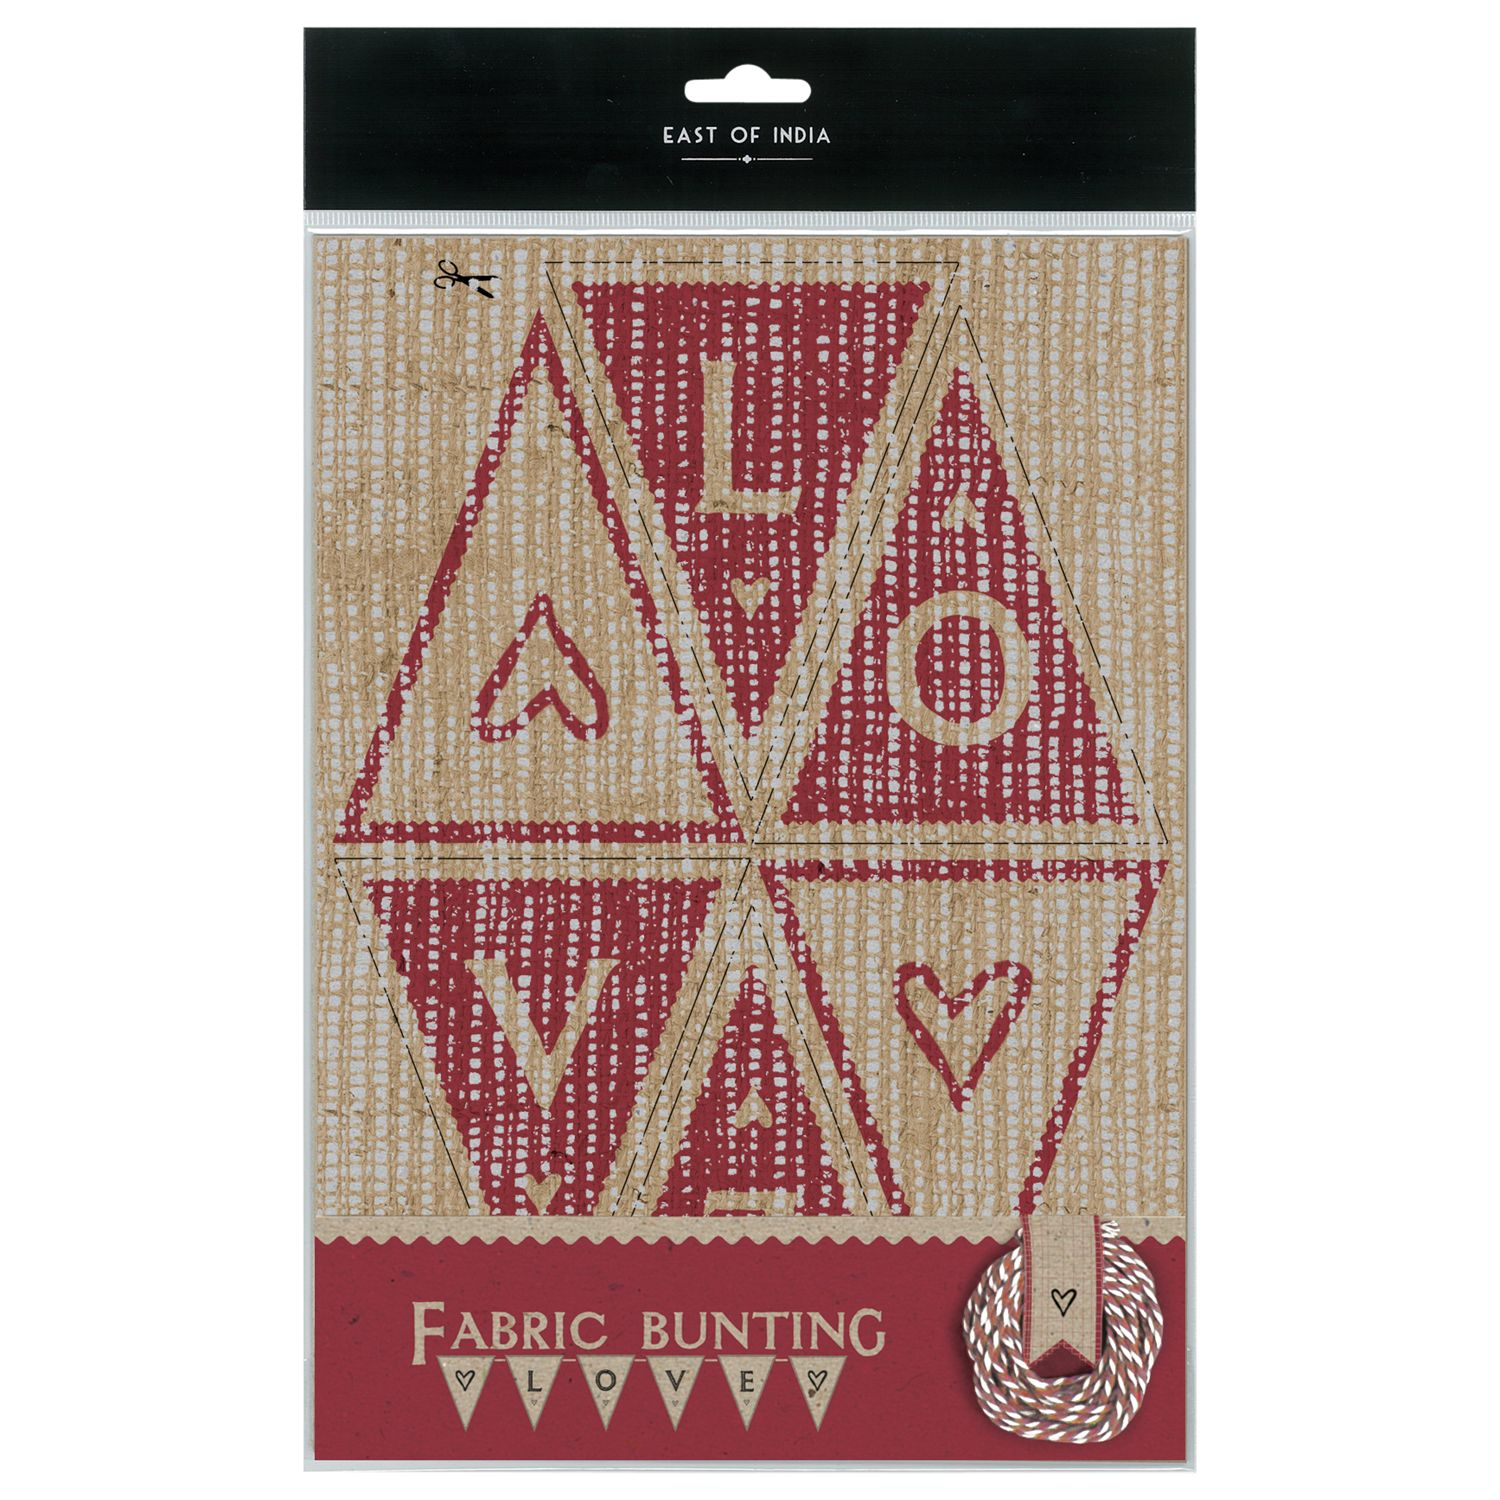 East of India East of India Fabric Bunting Kit, Natural/Red